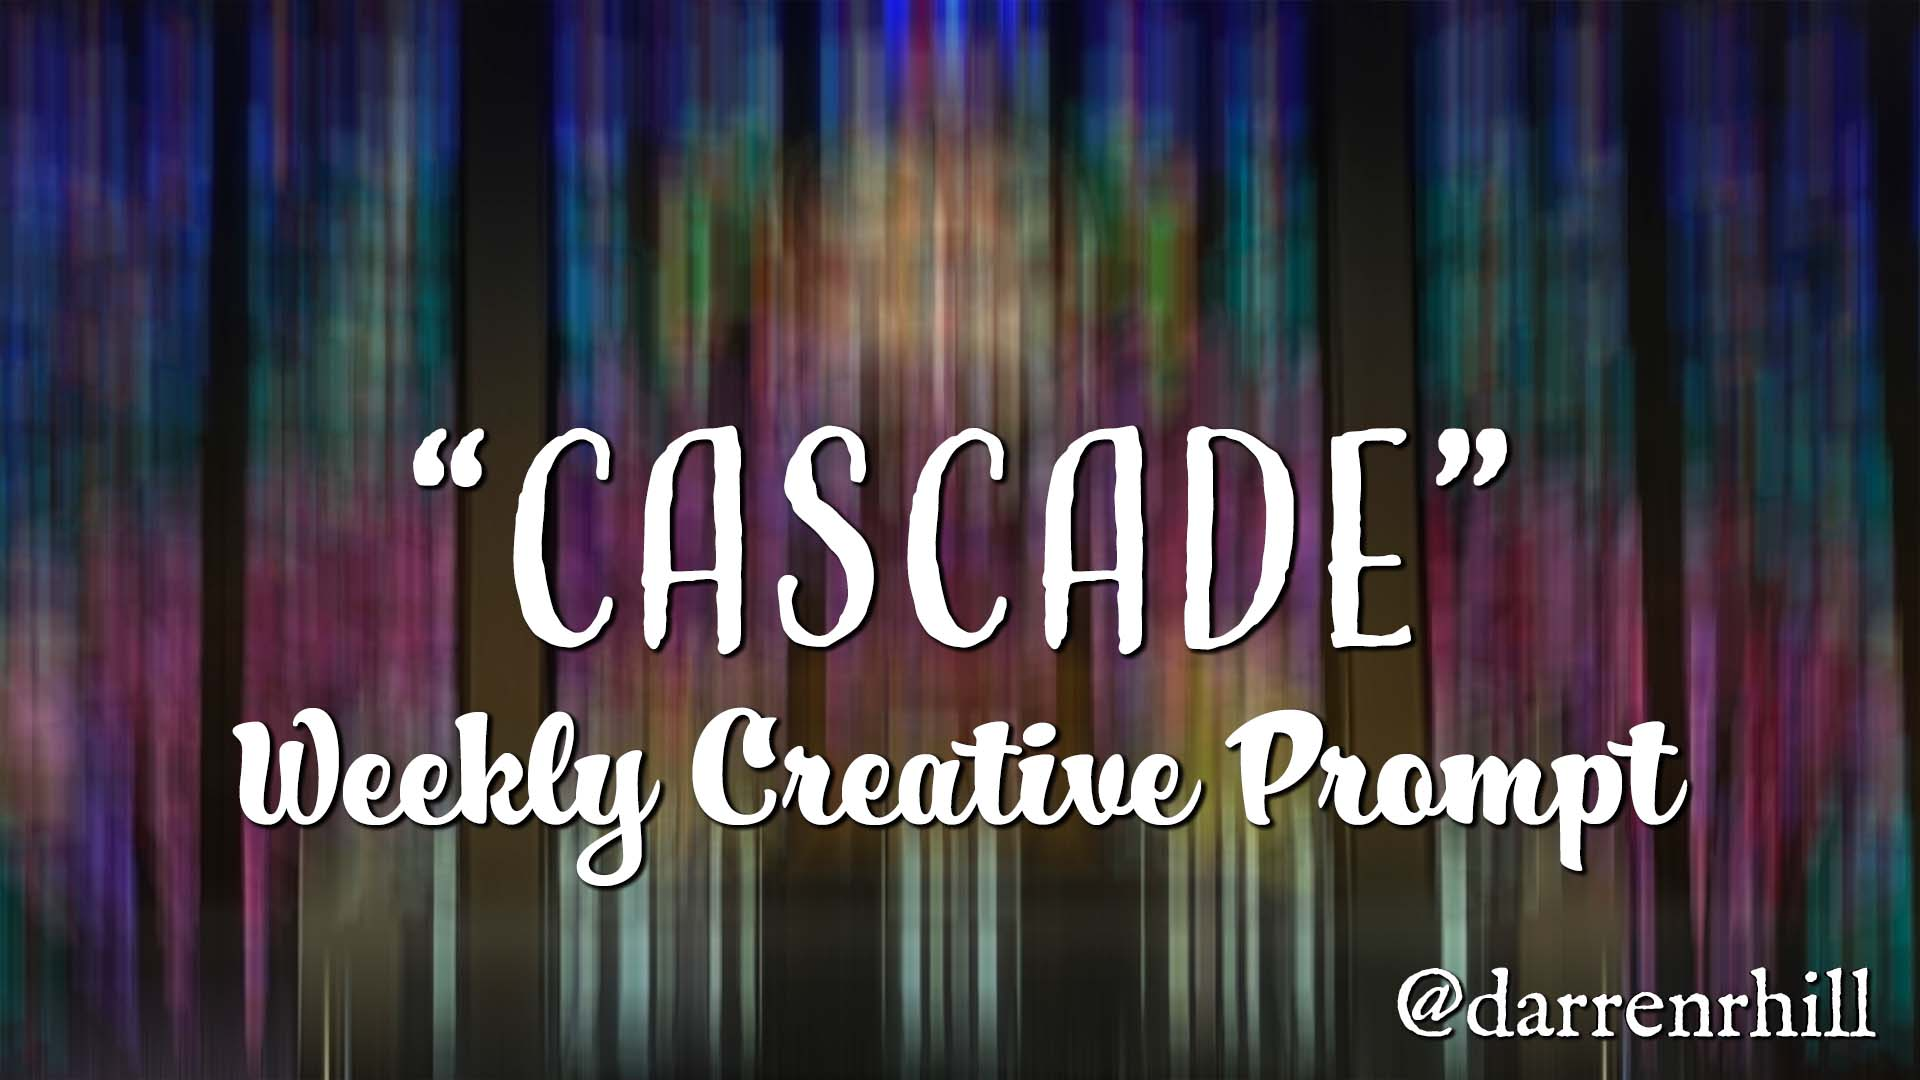 cascade weekly creative prompt